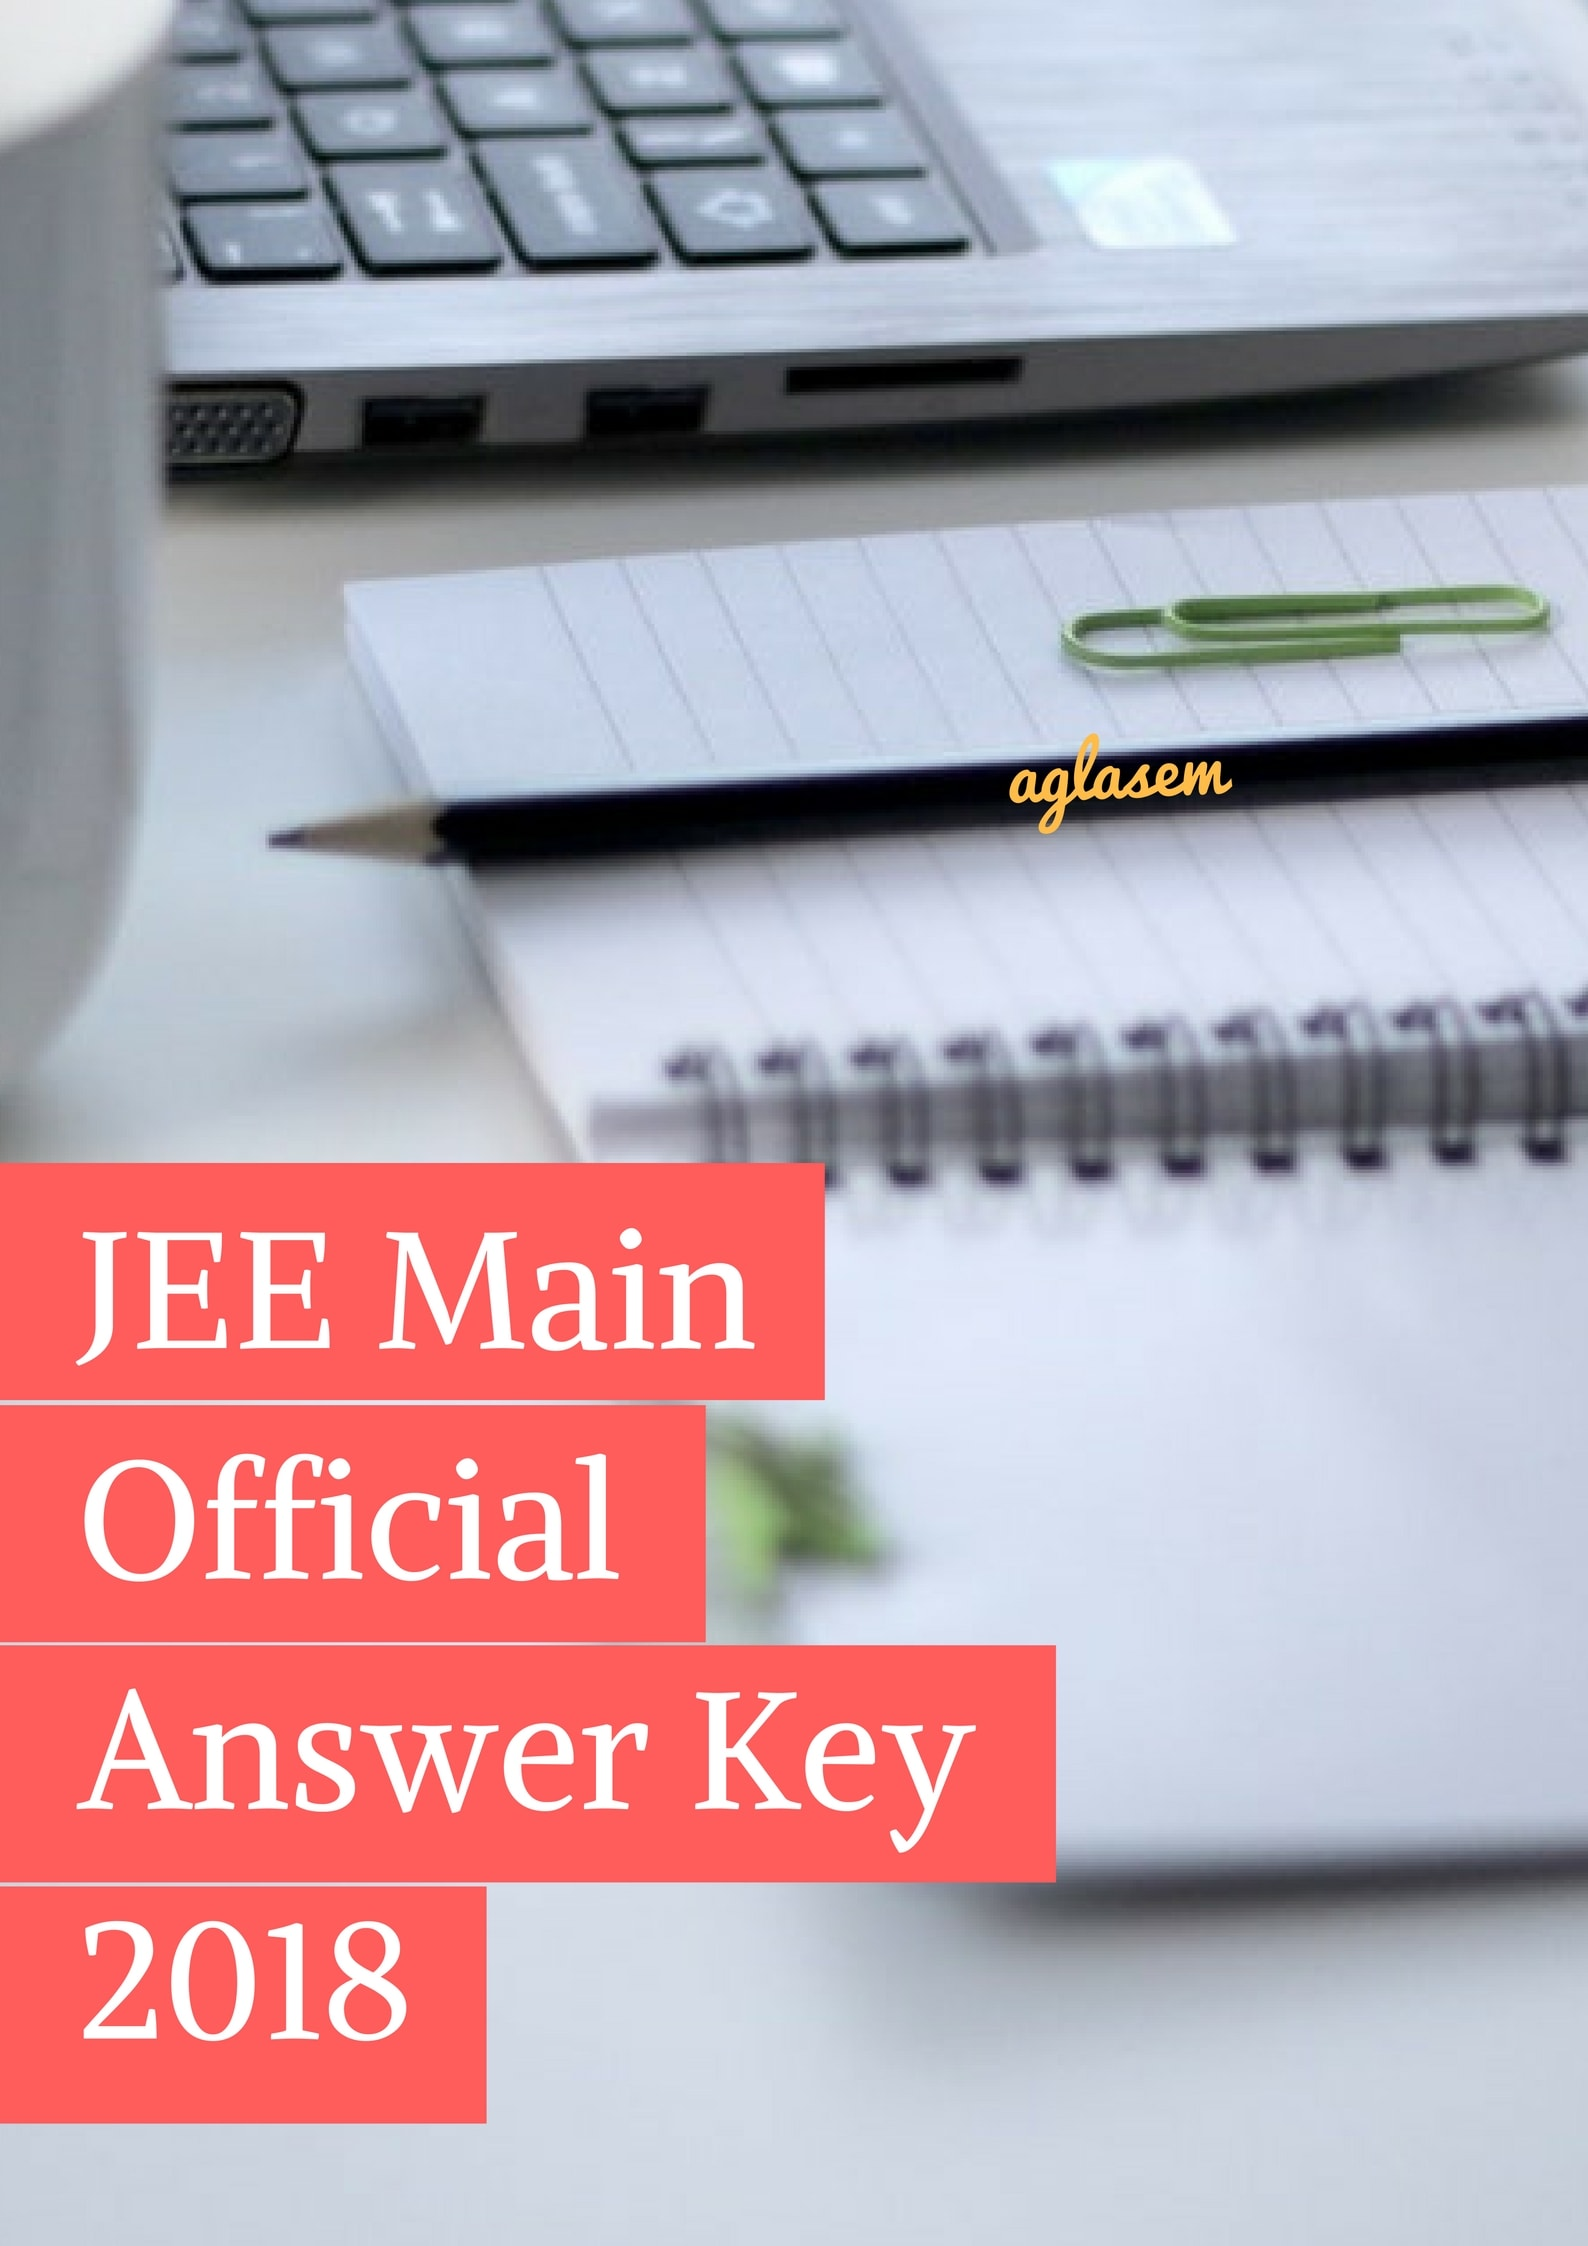 JEE Main 2018 Official Answer Key by CBSE